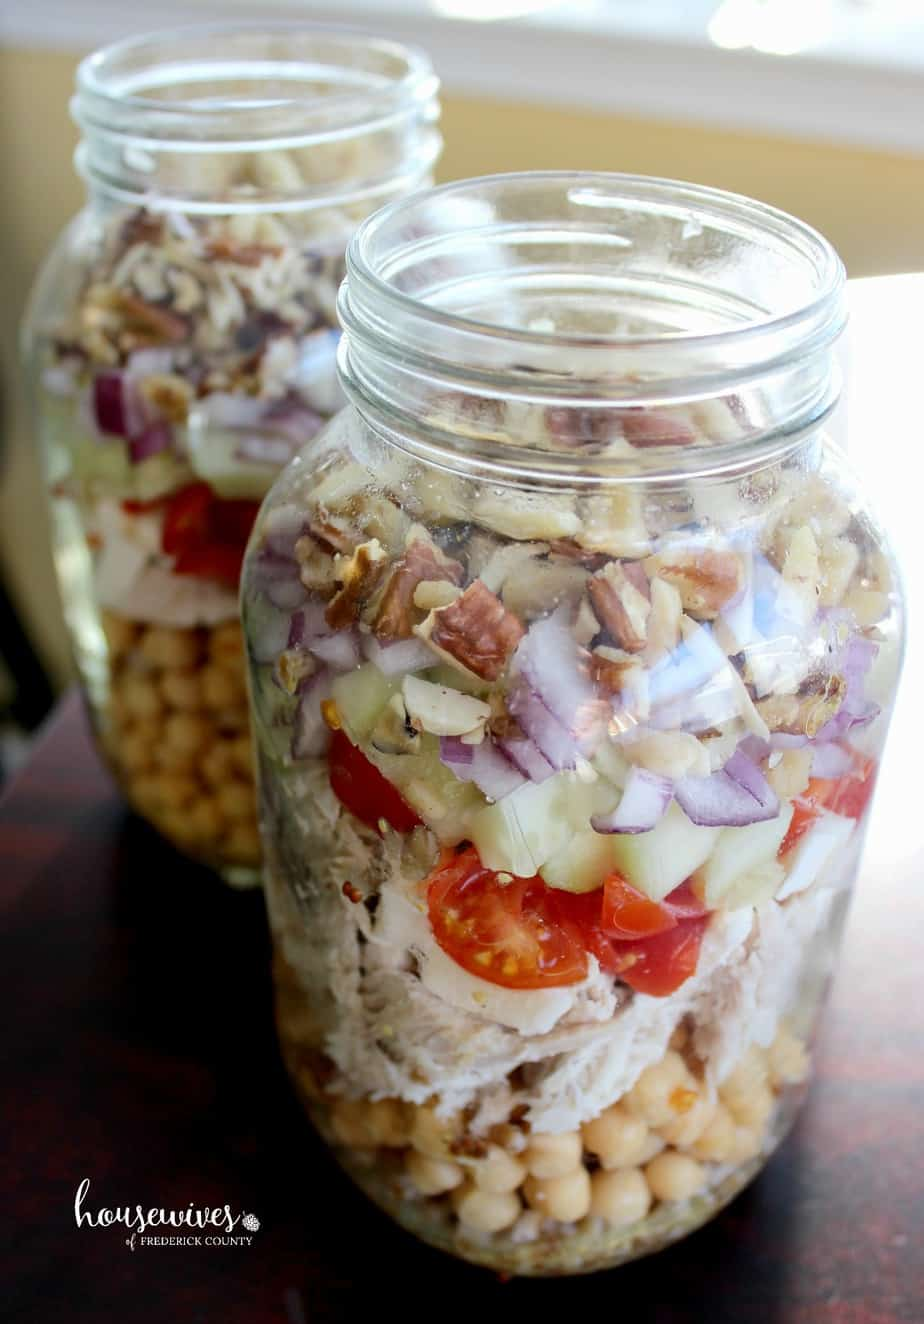 Meal Prep Recipe: Layer your ingredients in a specific order